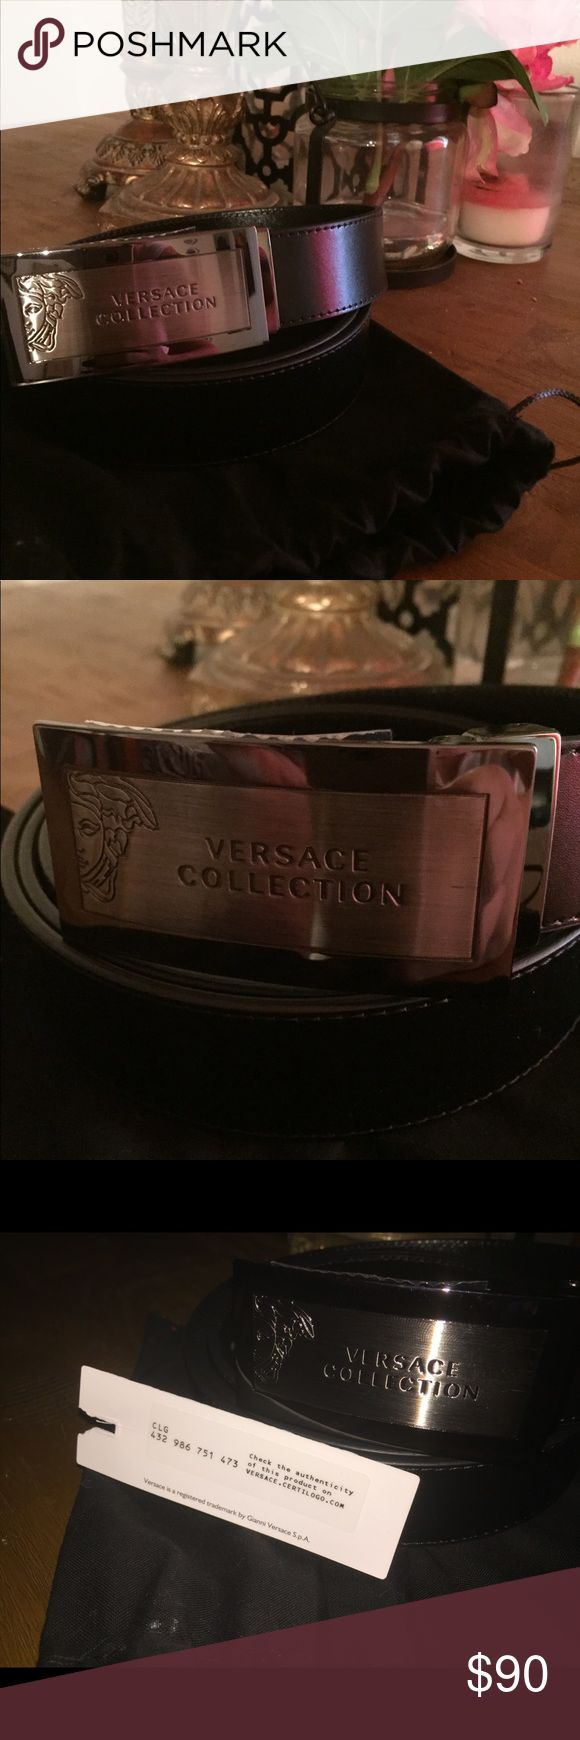 Versace collection men's belt Brand new Versace men's belt with authenticity card has two small bumps but never worn can fit men with size 40 and up waist still has the sticker cover so no scratches Versace Collection Accessories Belts